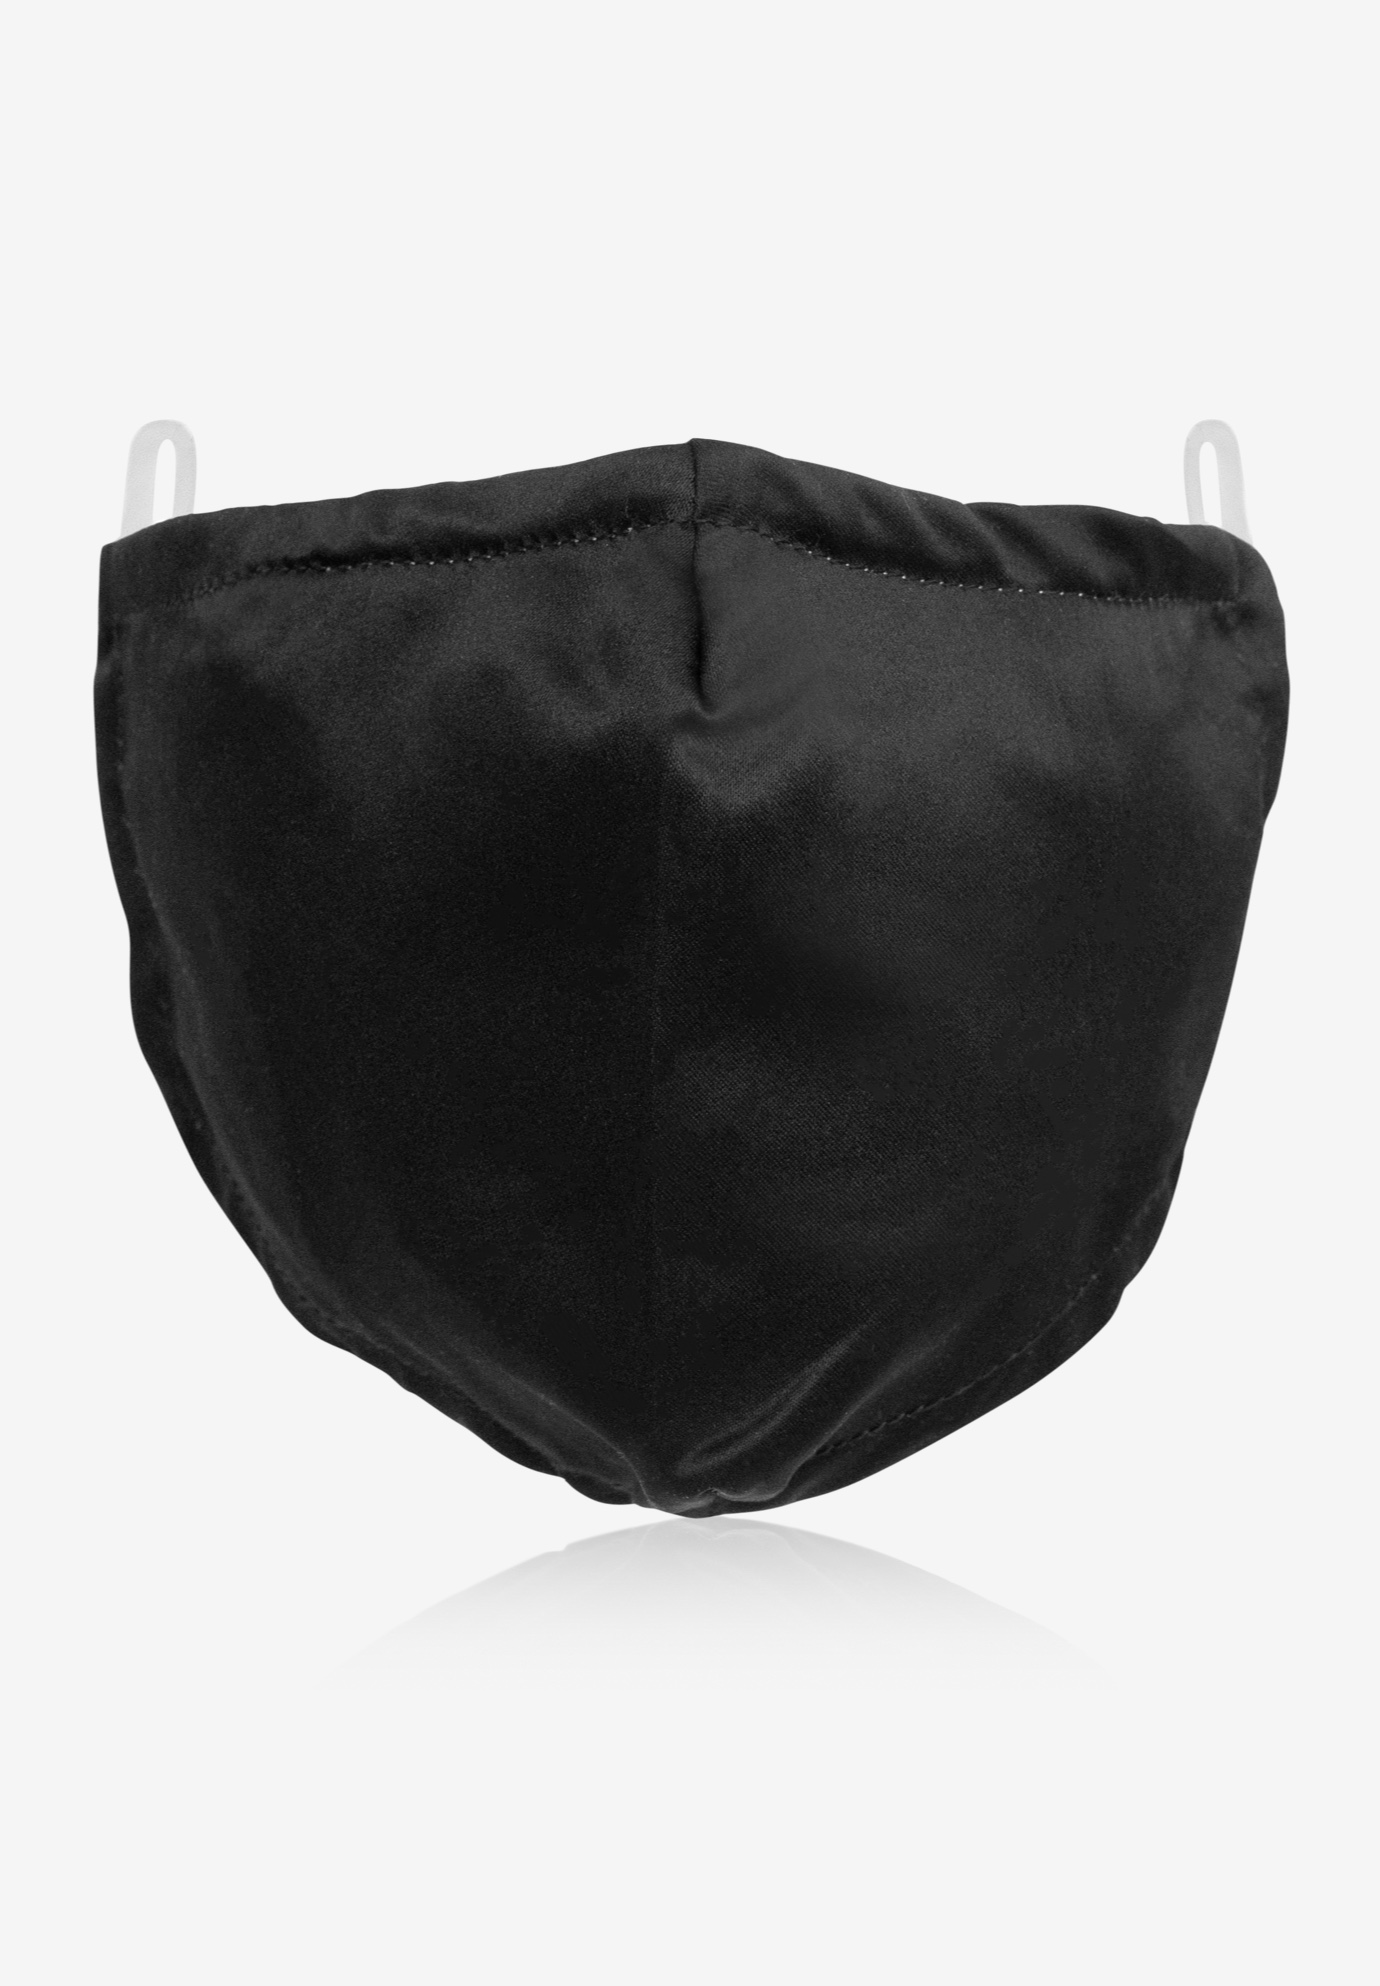 2-Layer Extra Large Reusable Cotton Face Mask - Men's,